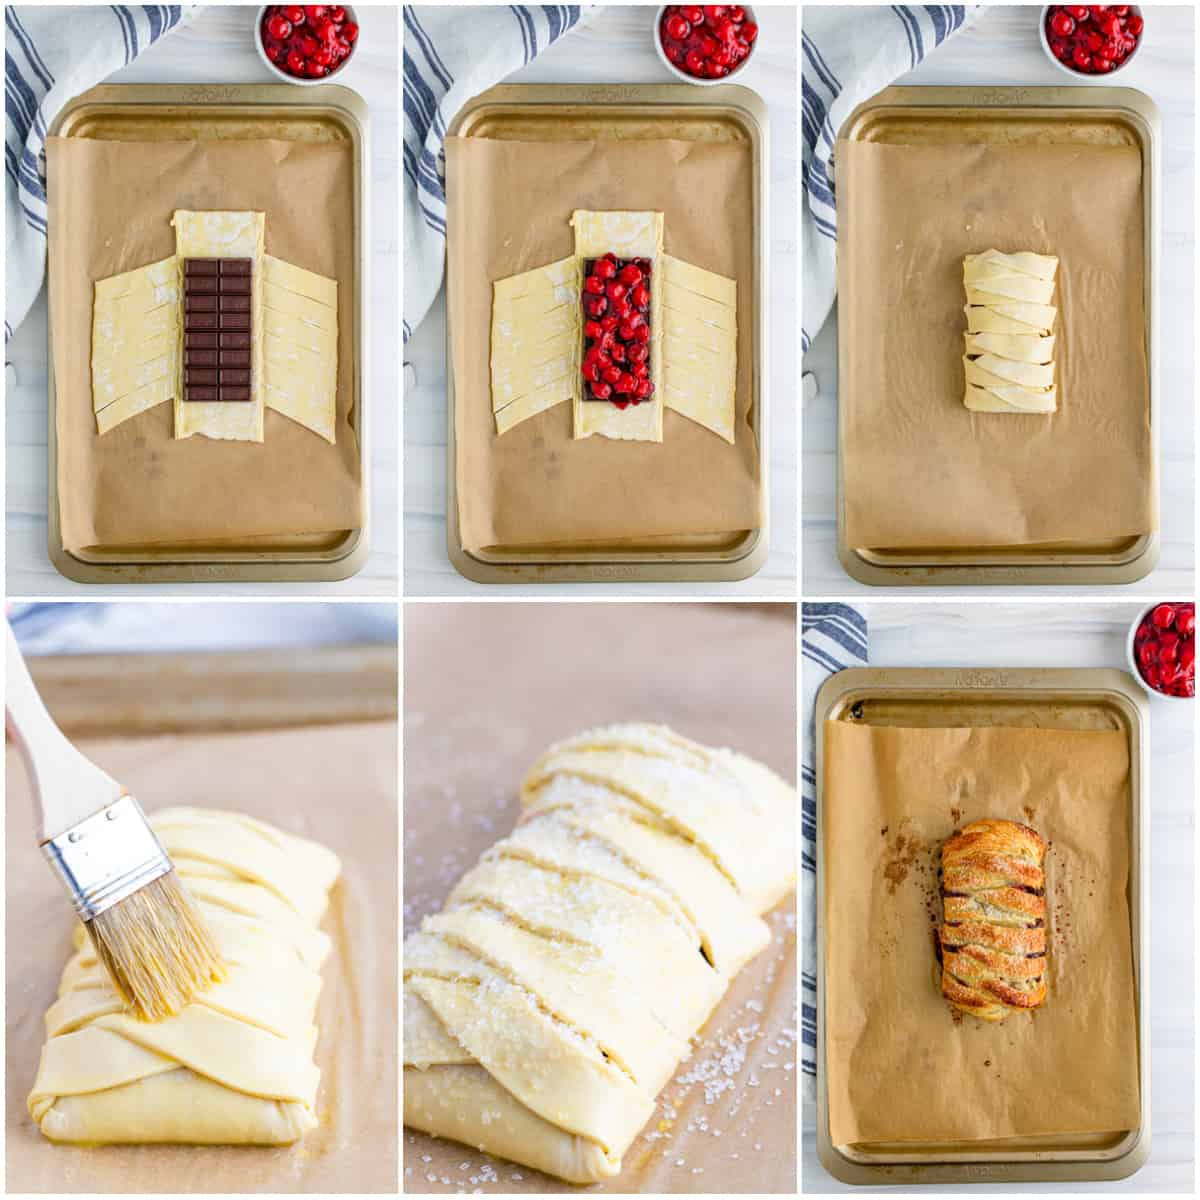 Step by step photos on how to make a Black Forest Puff Pastry Braid